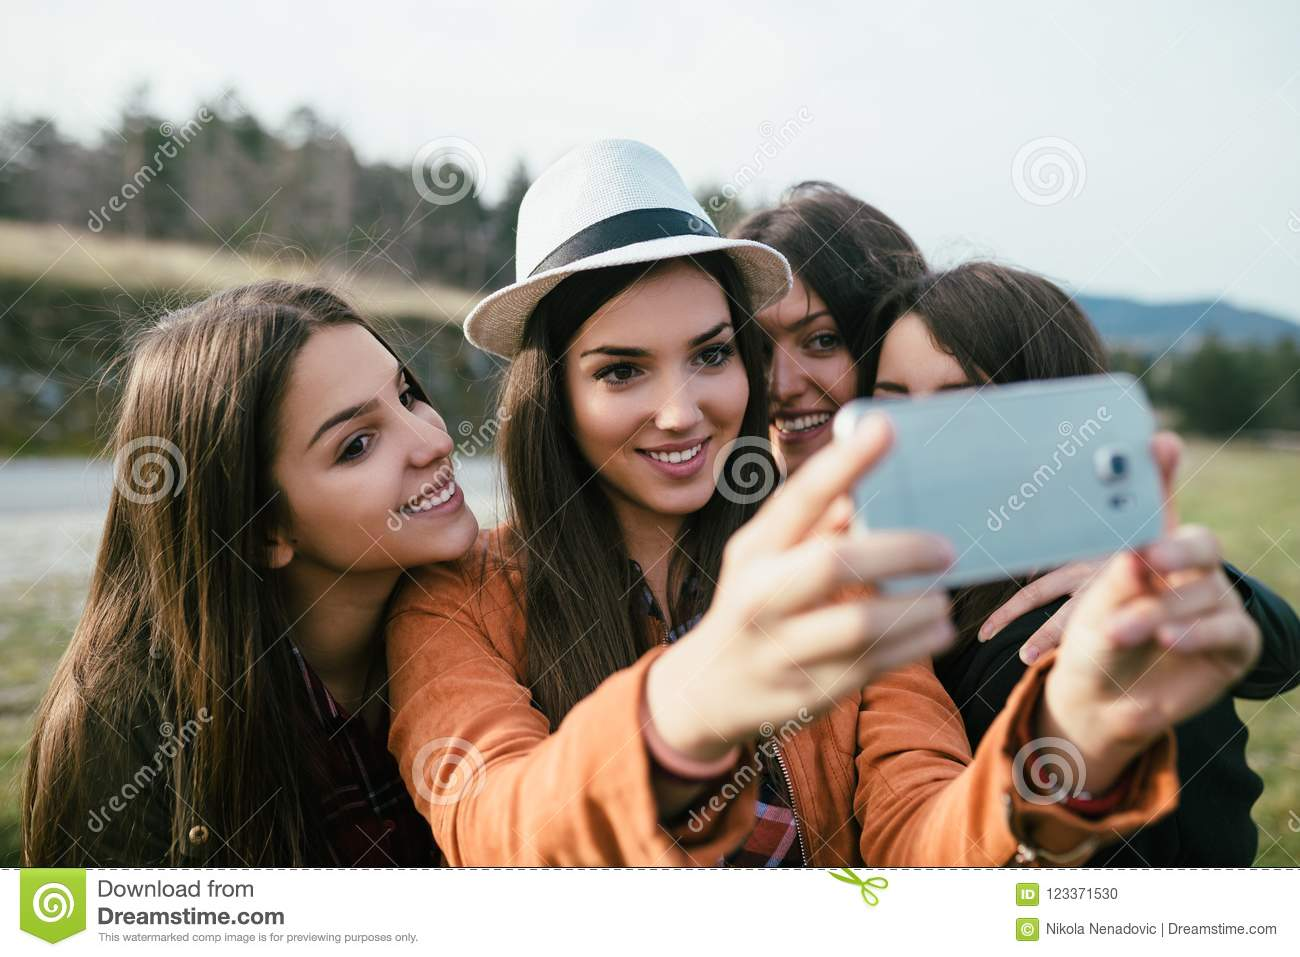 Group of four young women outdoors